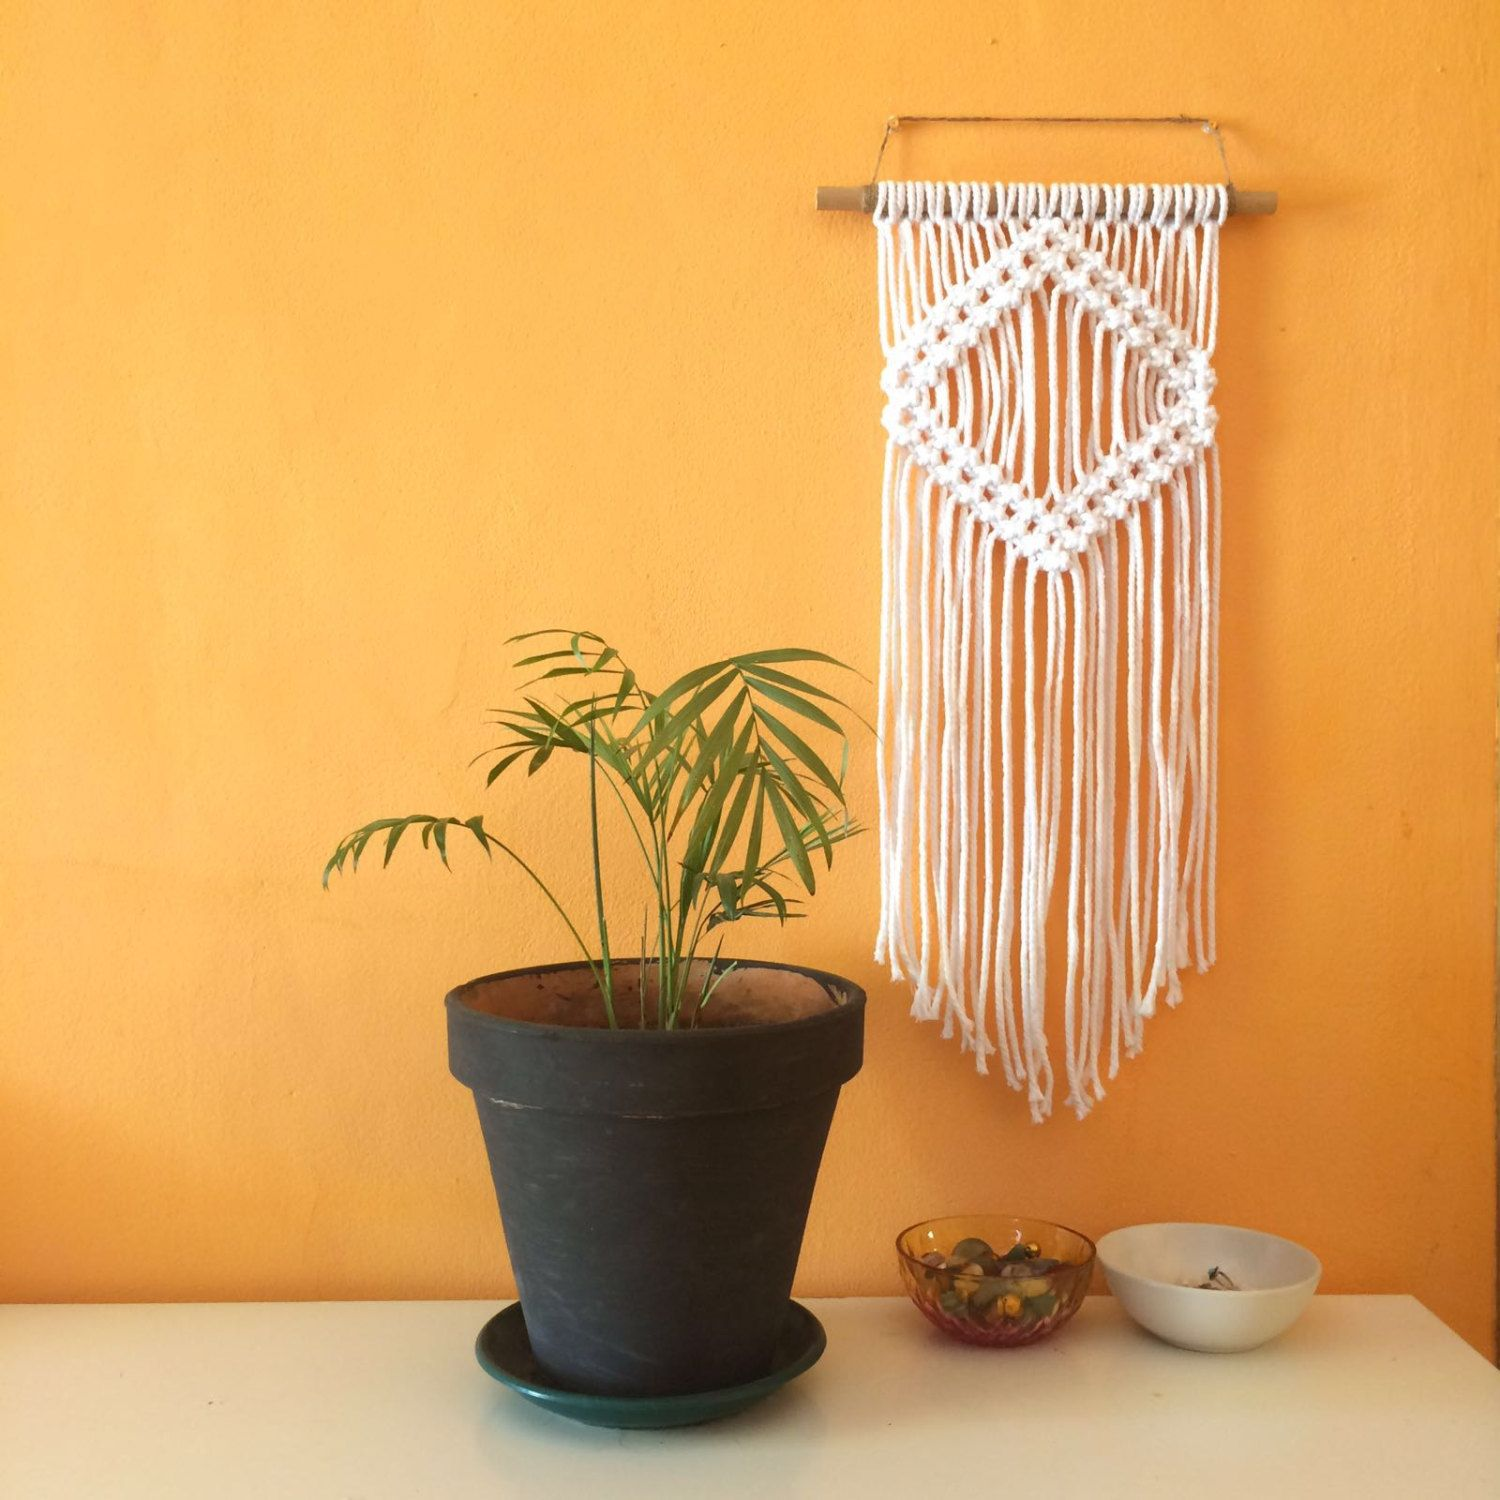 Macrame | Bedroom(er) has it | Pinterest